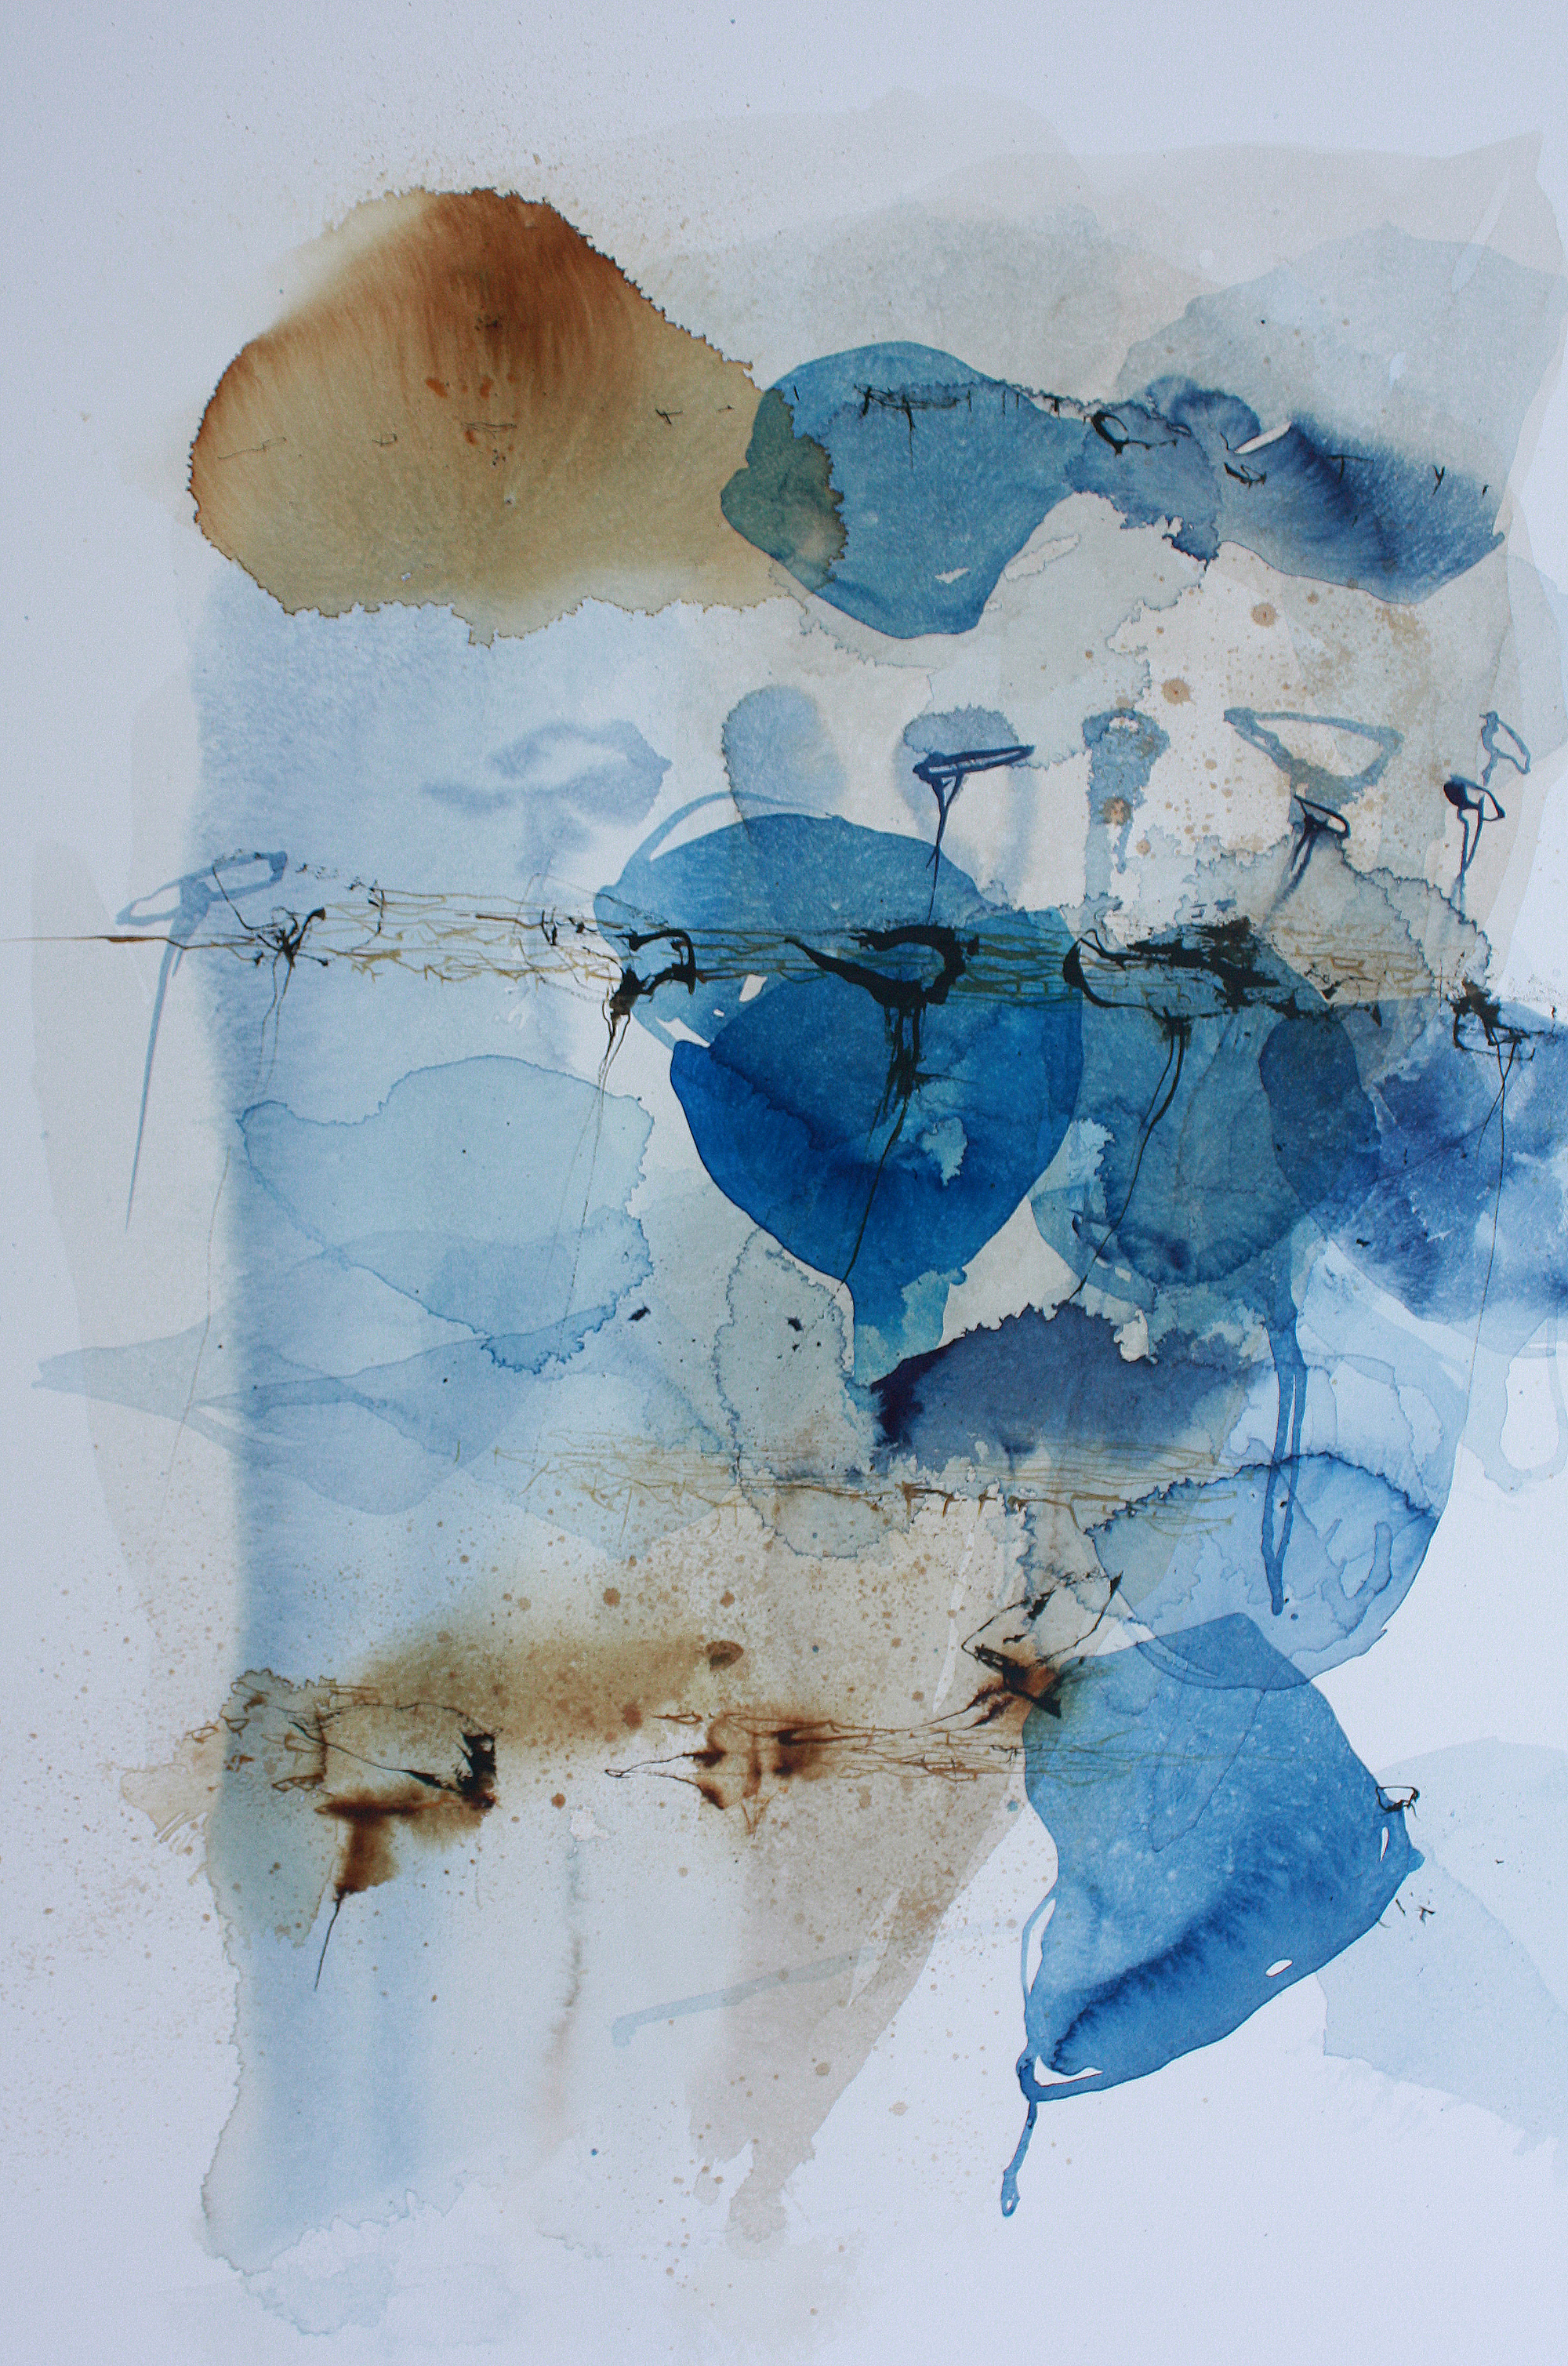 """Ana Zanic  from the """"Voyage"""" series, watercolor on aquaboard panel  24x36"""